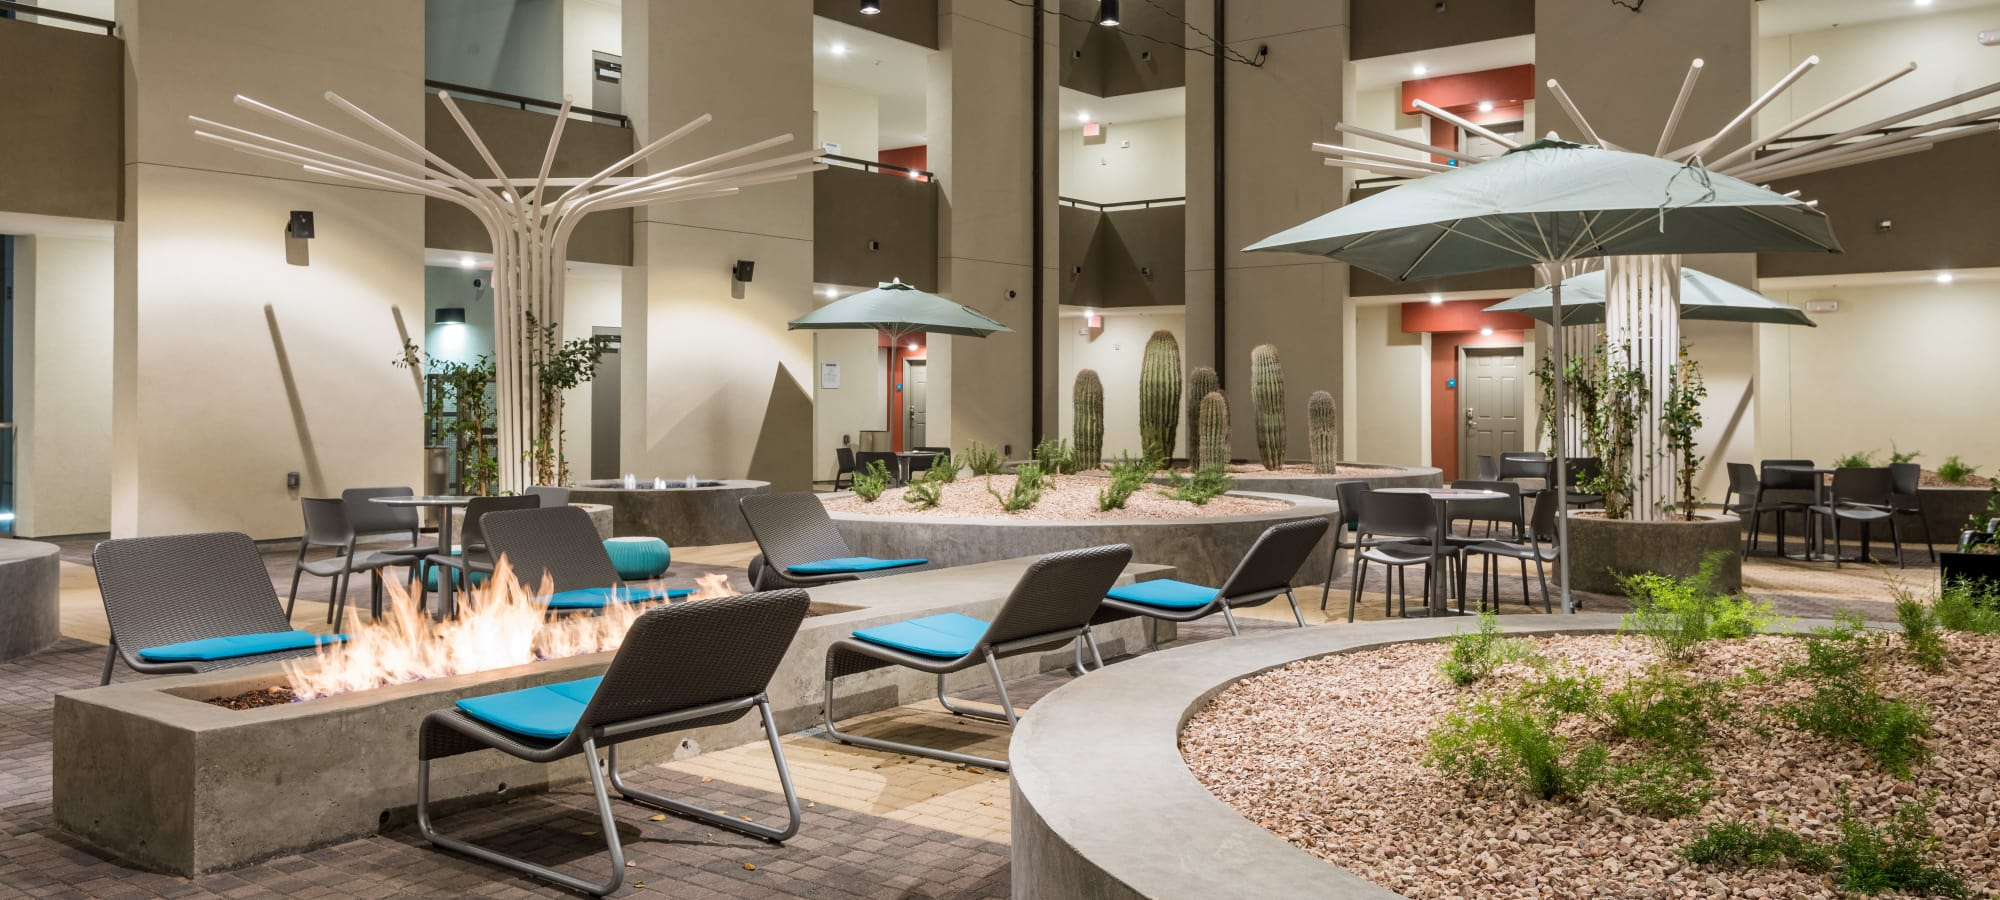 Comfortable seating around the fire pit in the courtyard at Capital Place in Phoenix, Arizona